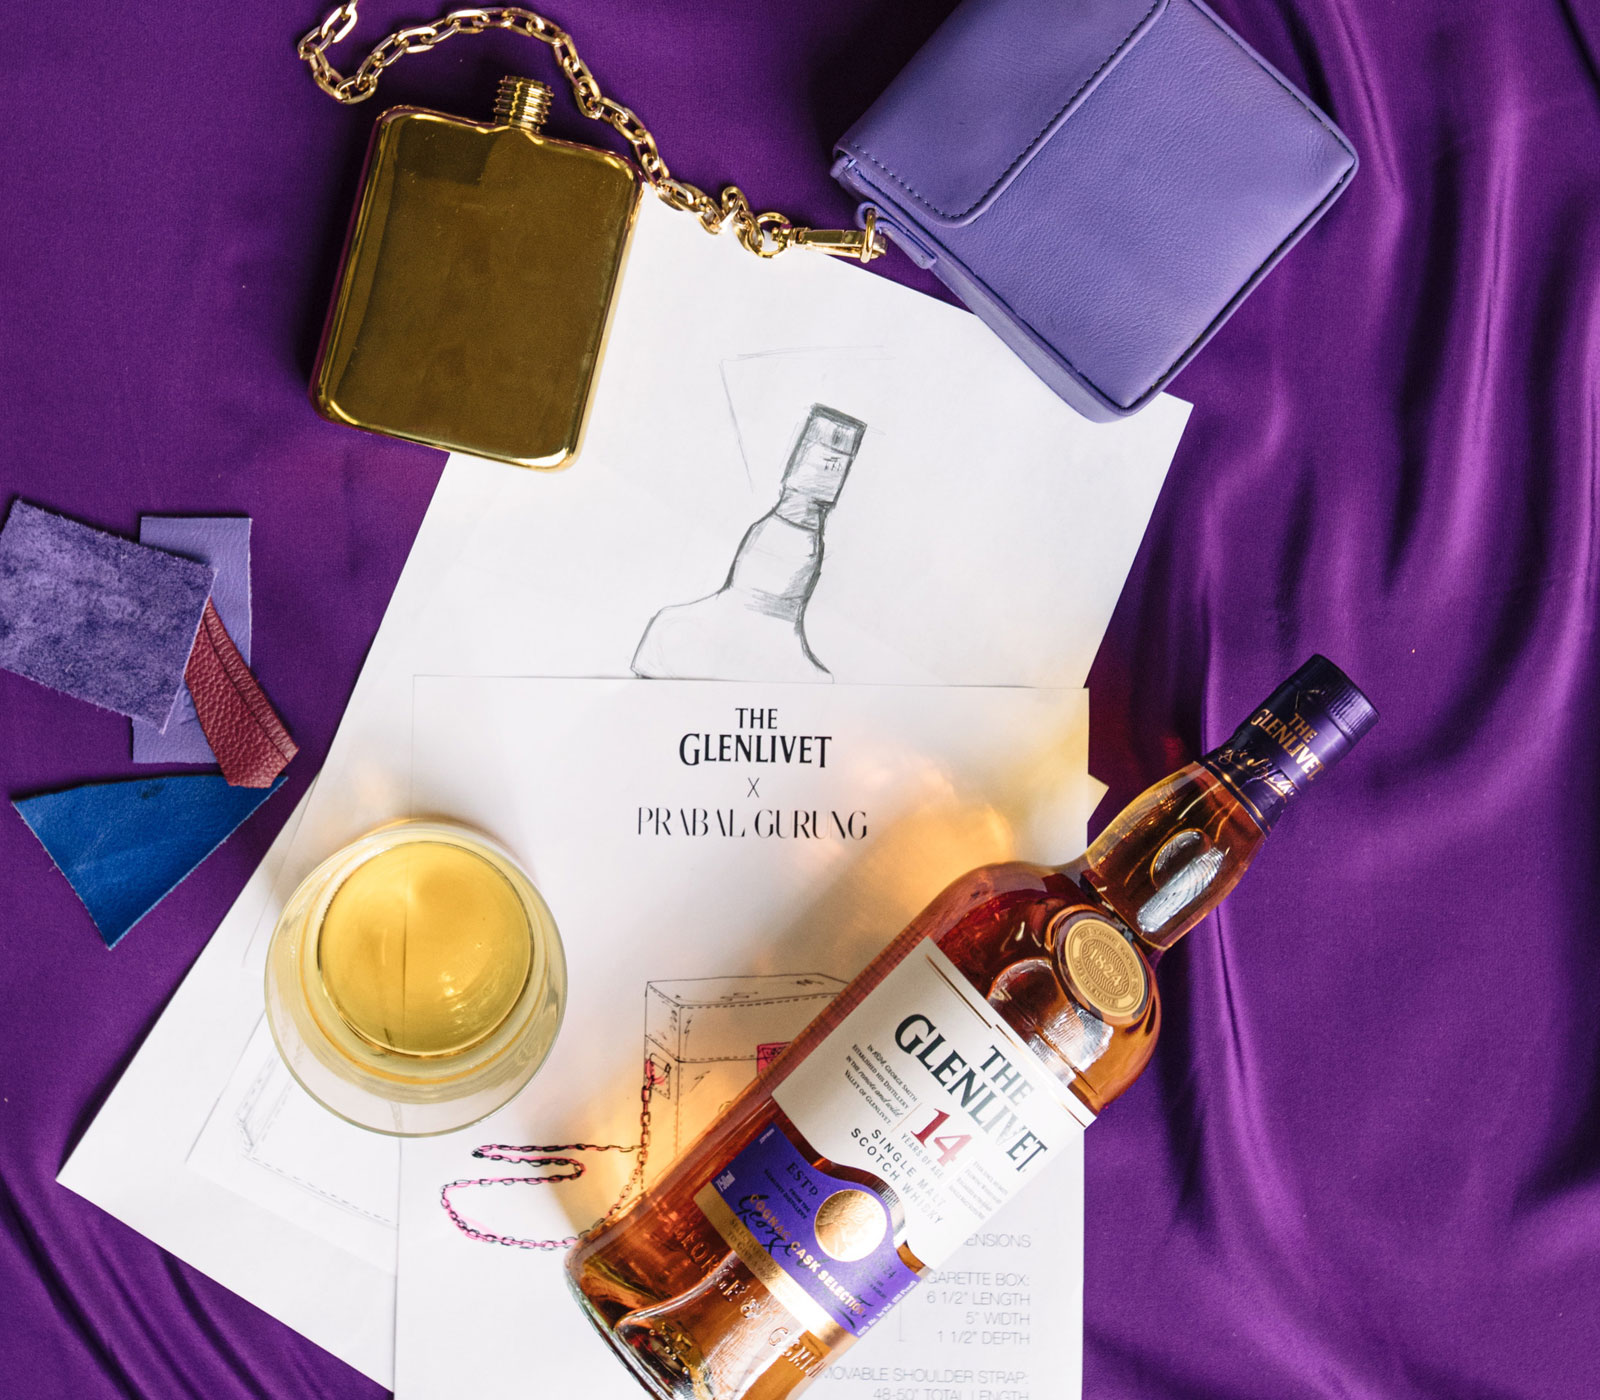 Prabal-Gurung-x-The-Glenlivet